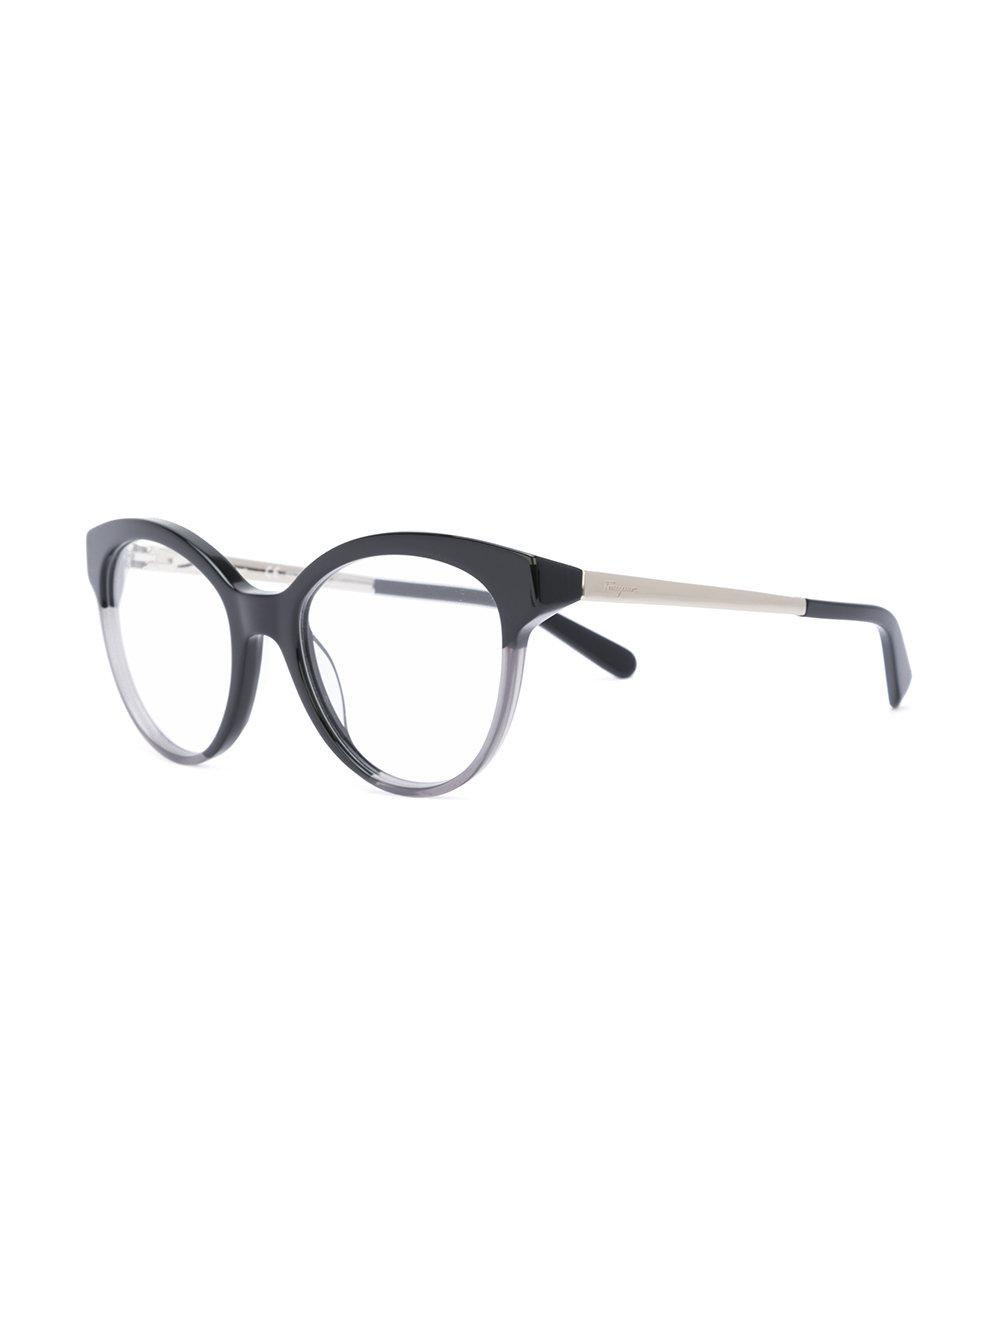 c57f0591ea2 Ferragamo Cat Eye-frame Optical Glasses in Black - Lyst